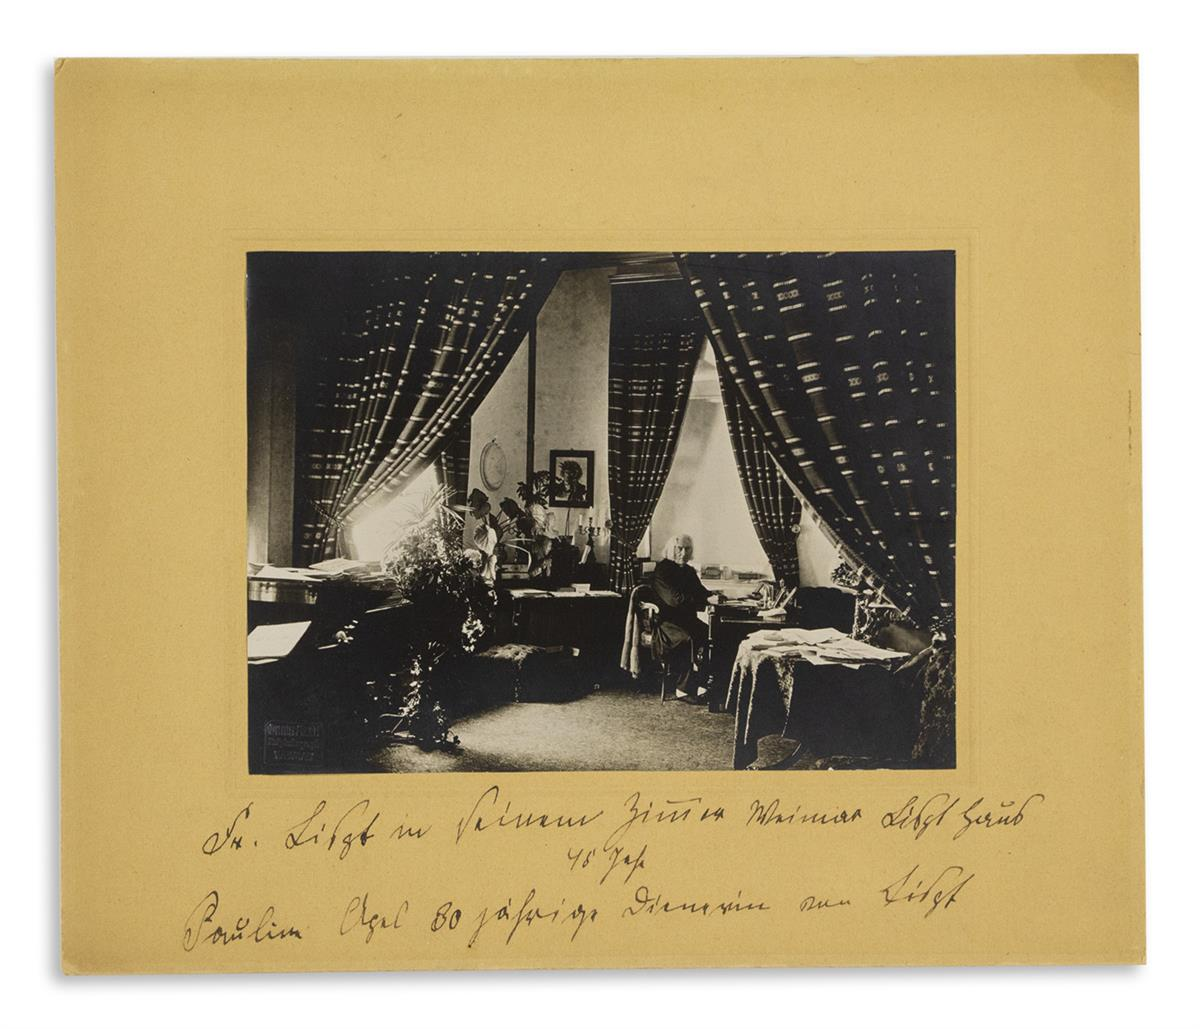 (LISZT-FRANZ)-APEL-PAULINE-Photograph-Signed-and-Inscribed-F